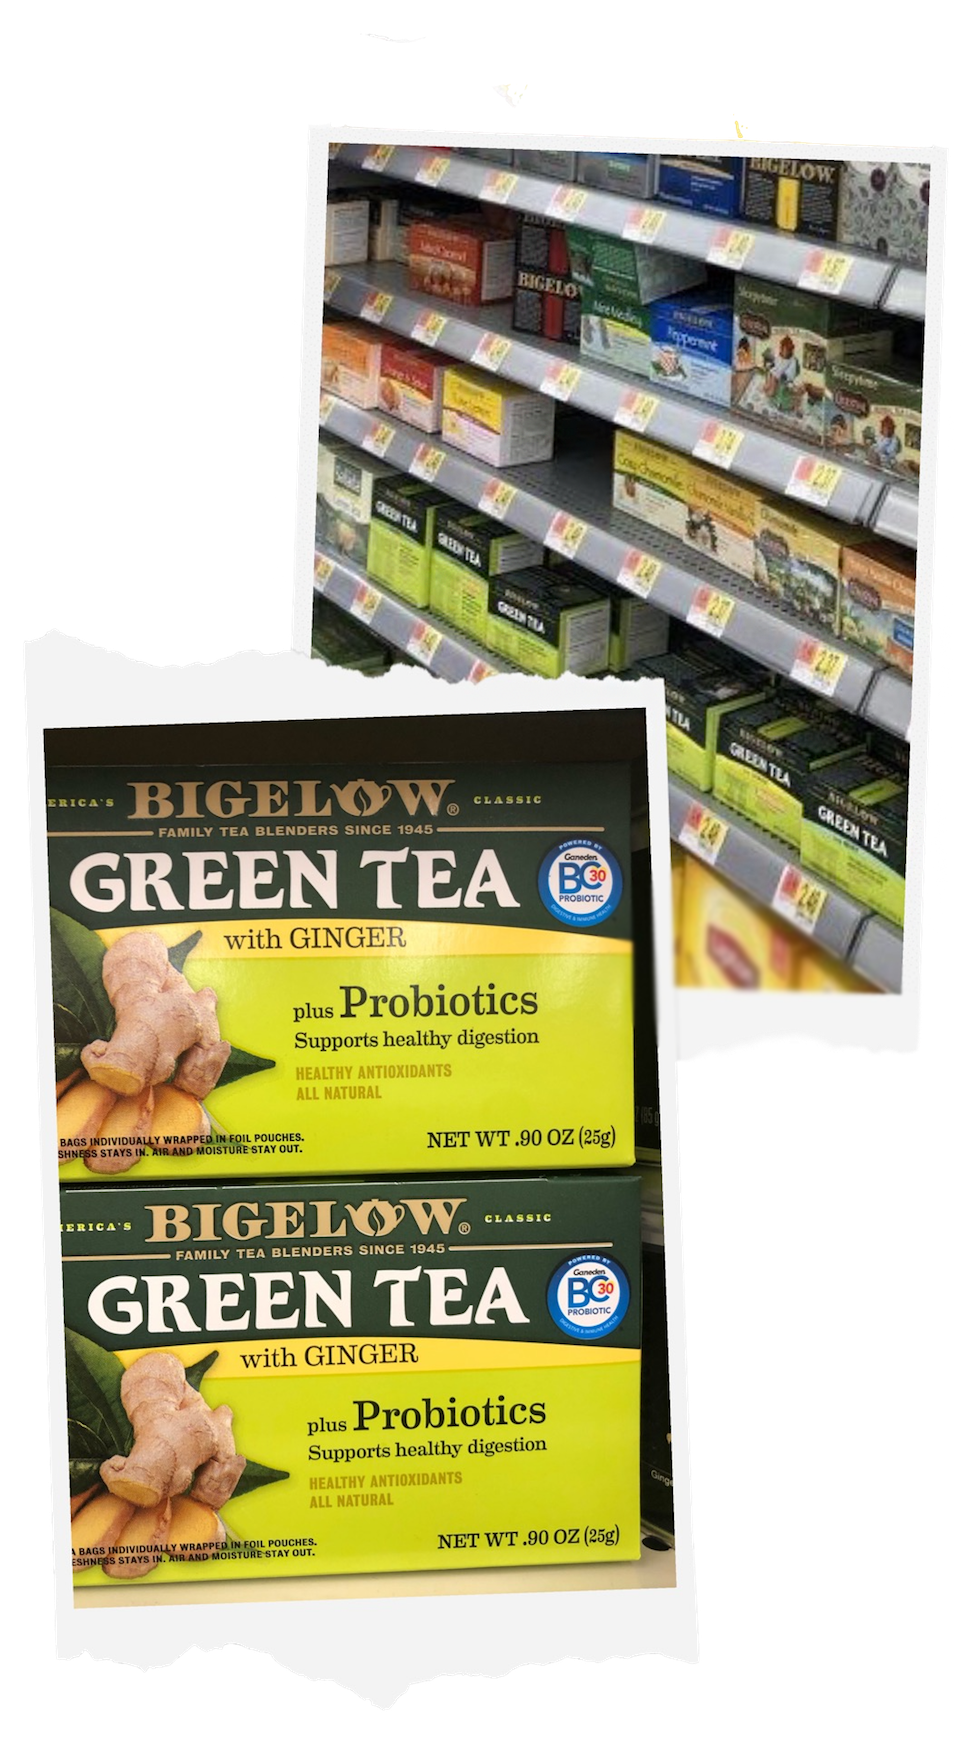 Bigelow tea can be found in the Tea aisle in Walmart stores!